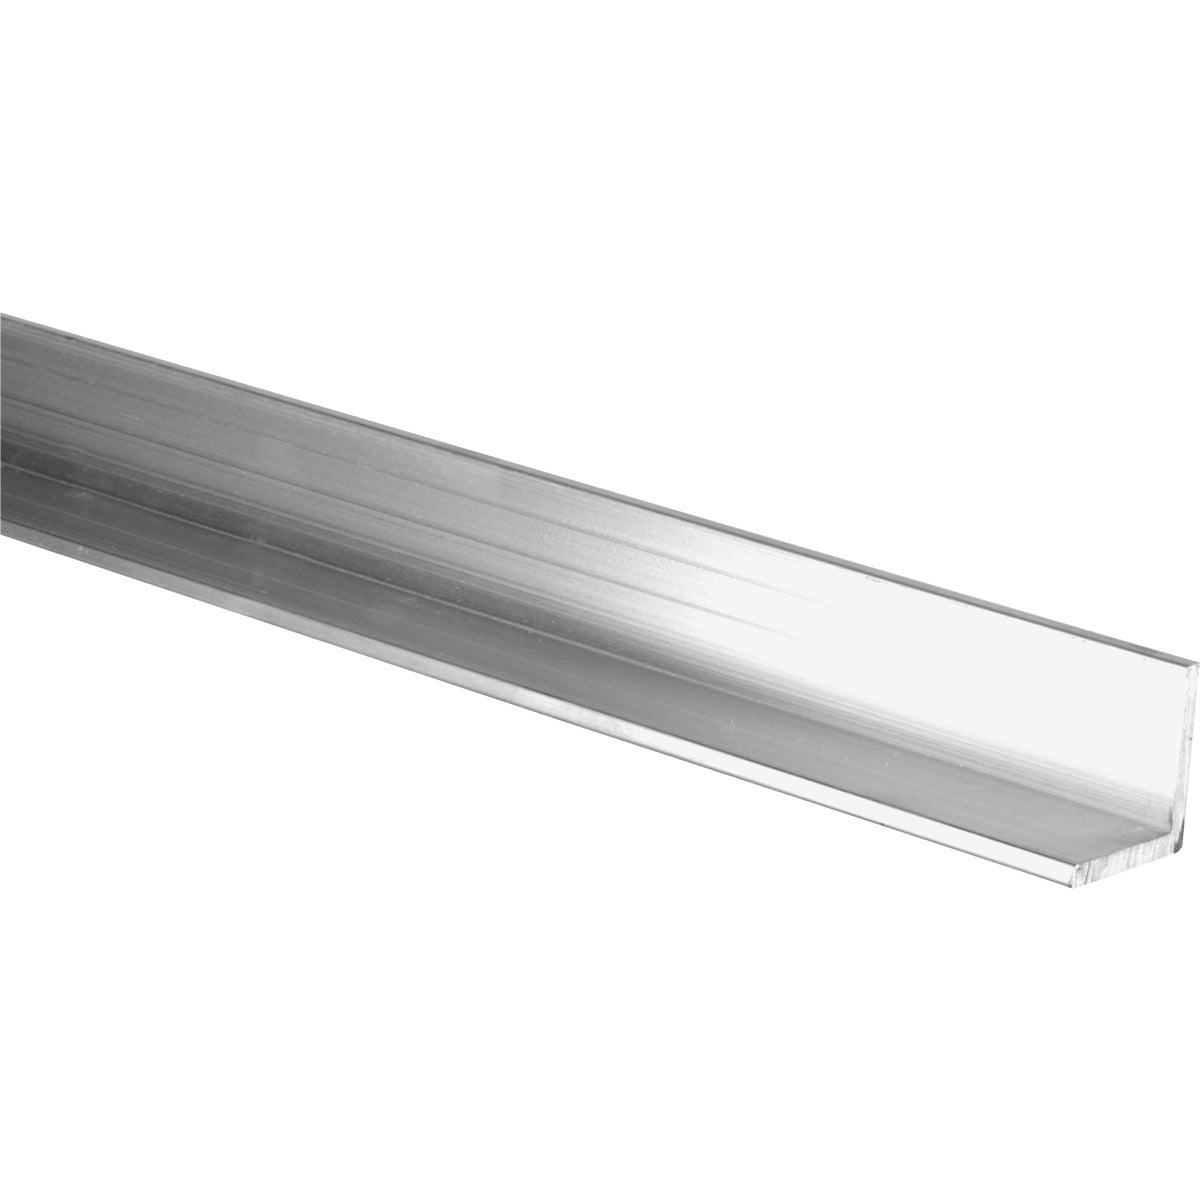 1/16X1/2X6' ALUM ANGLE - N247270 by National Mfg Co